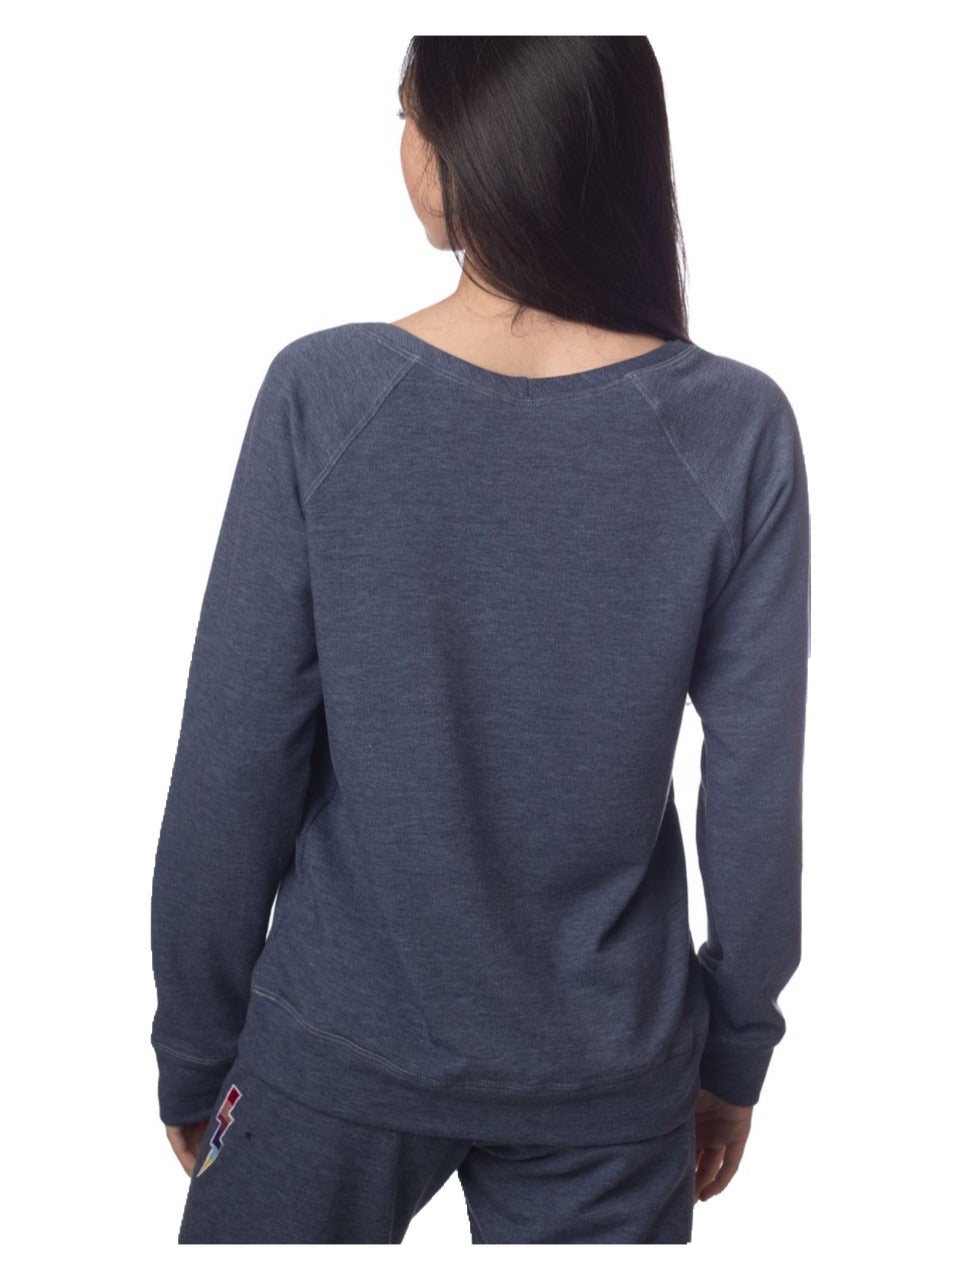 Emily Hsu Lightning Bolt Sweatshirt Sky Denim